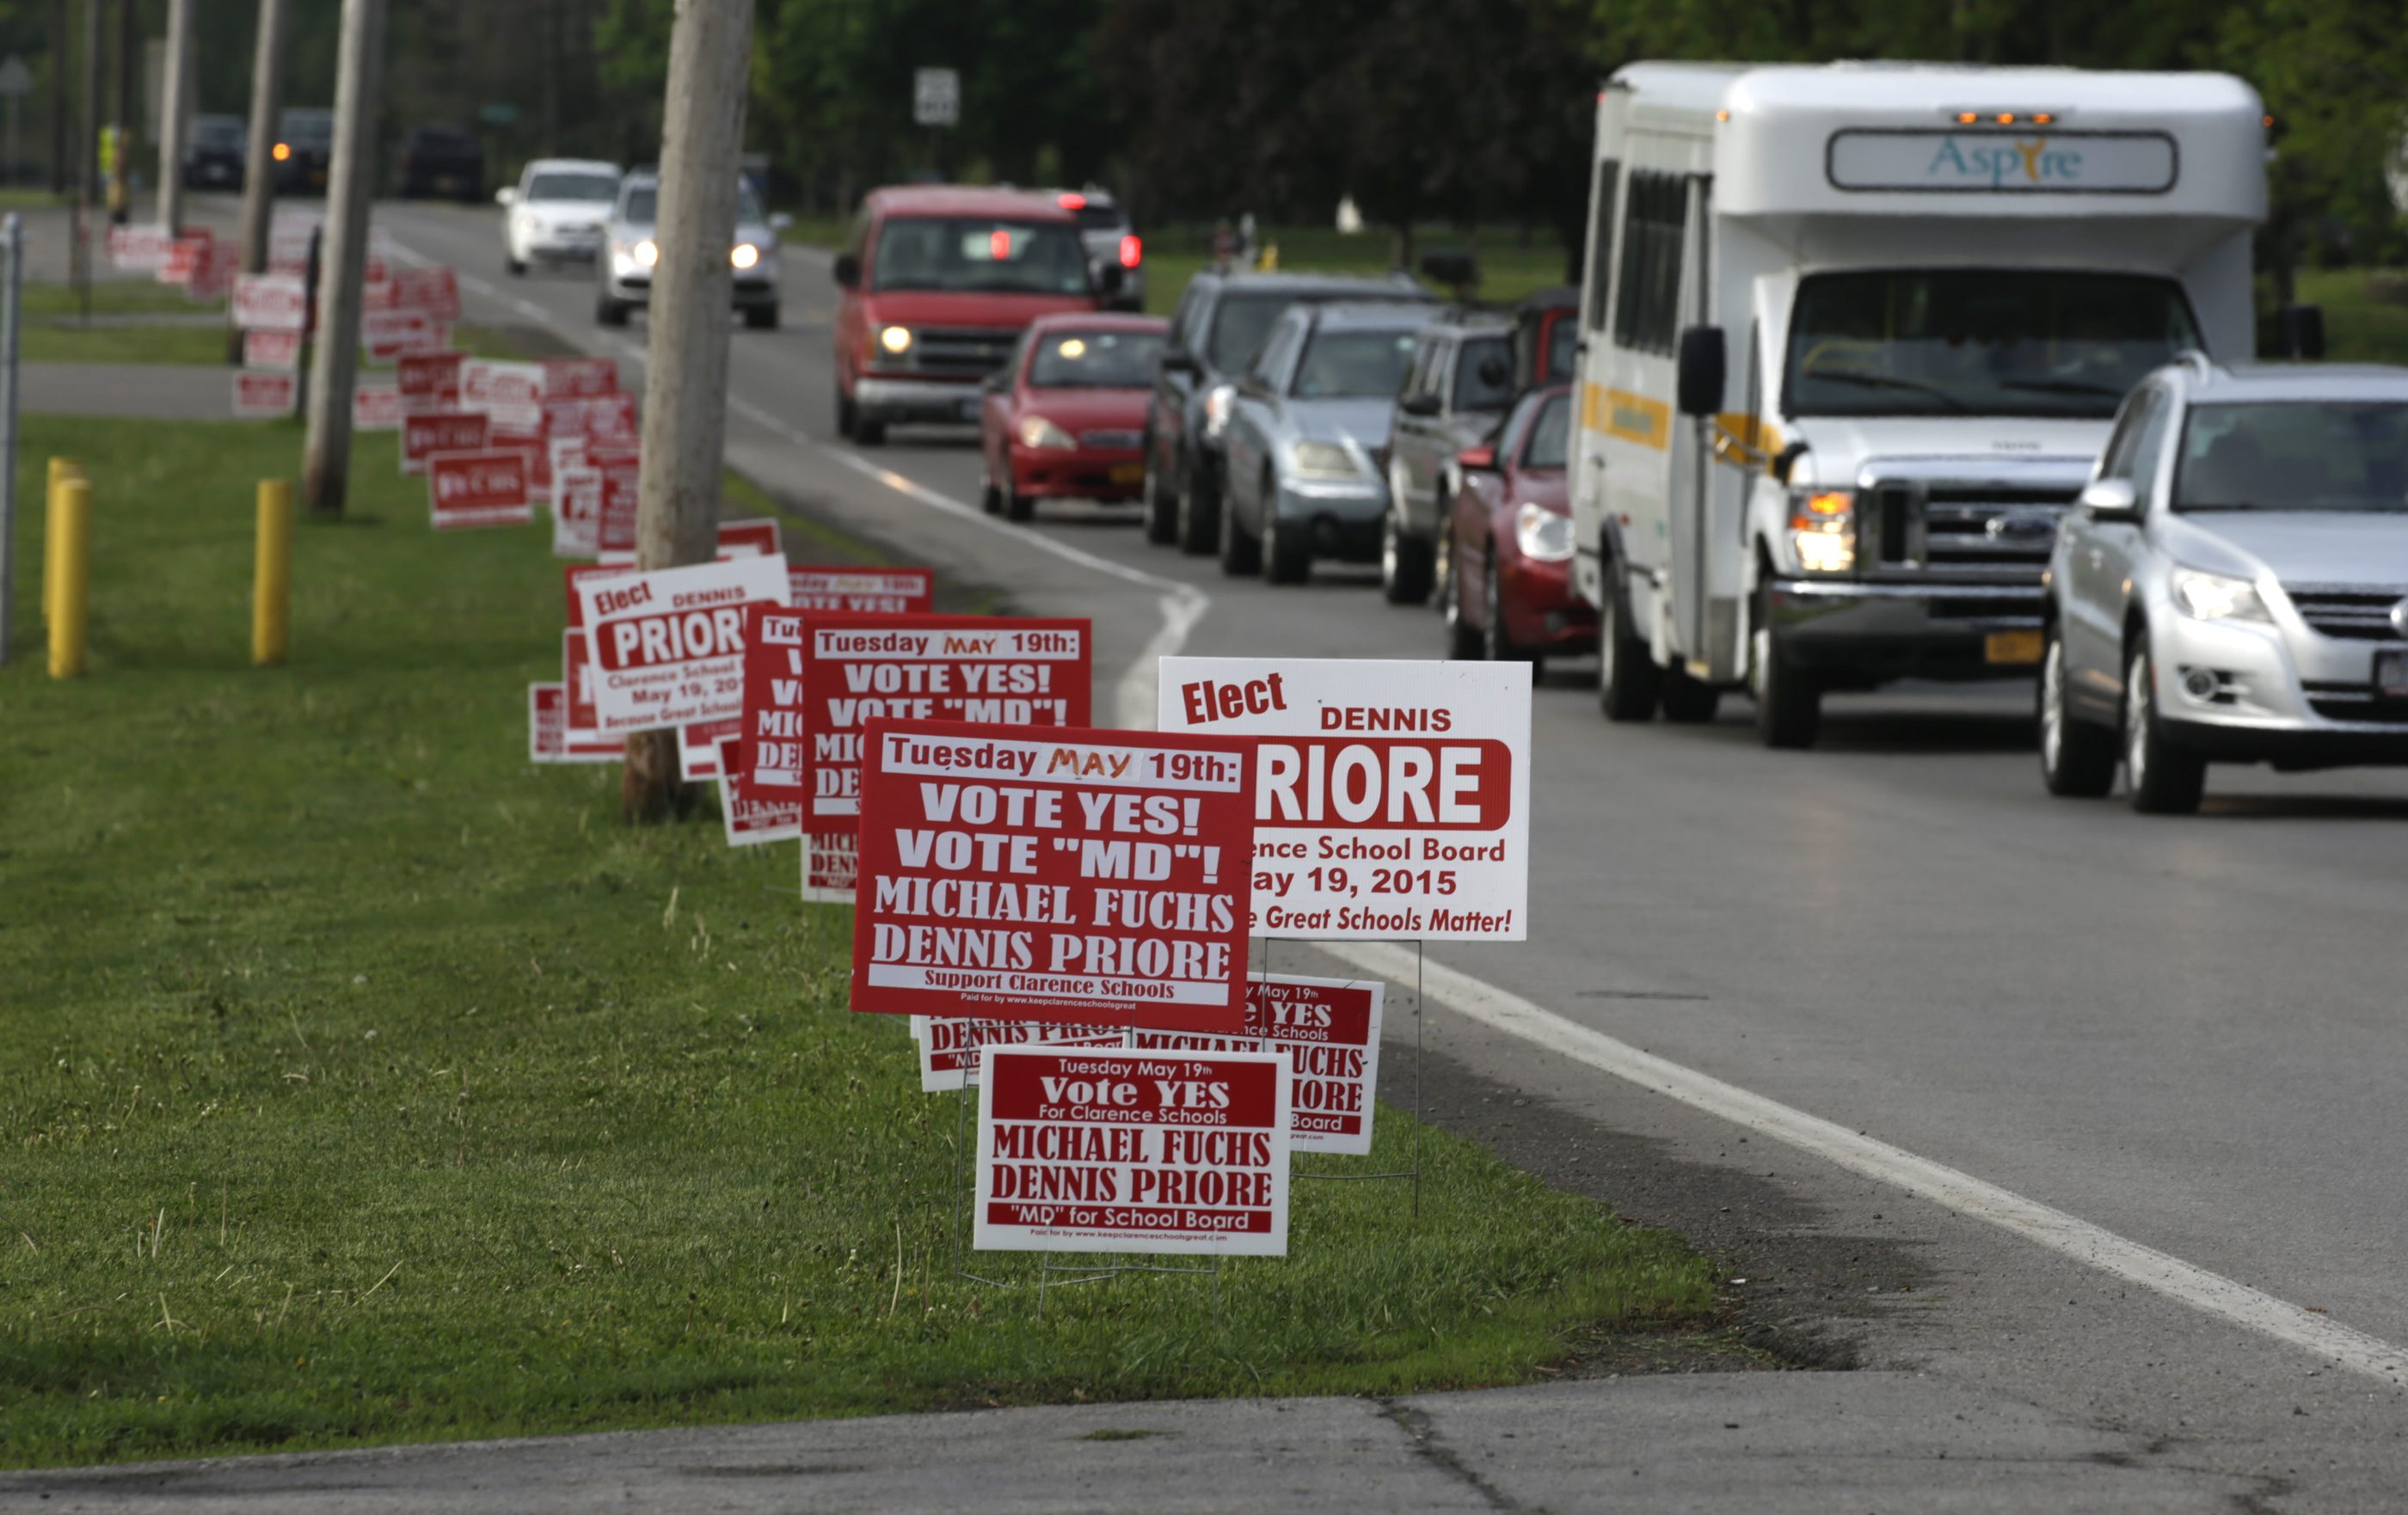 Vehicles pass signs along Gunnville Road as vote on Clarence School Budget and board election takes place at Clarence High School in Clarence, N.Y., on Tuesday, May 19, 2015.   (John Hickey/Buffalo News)